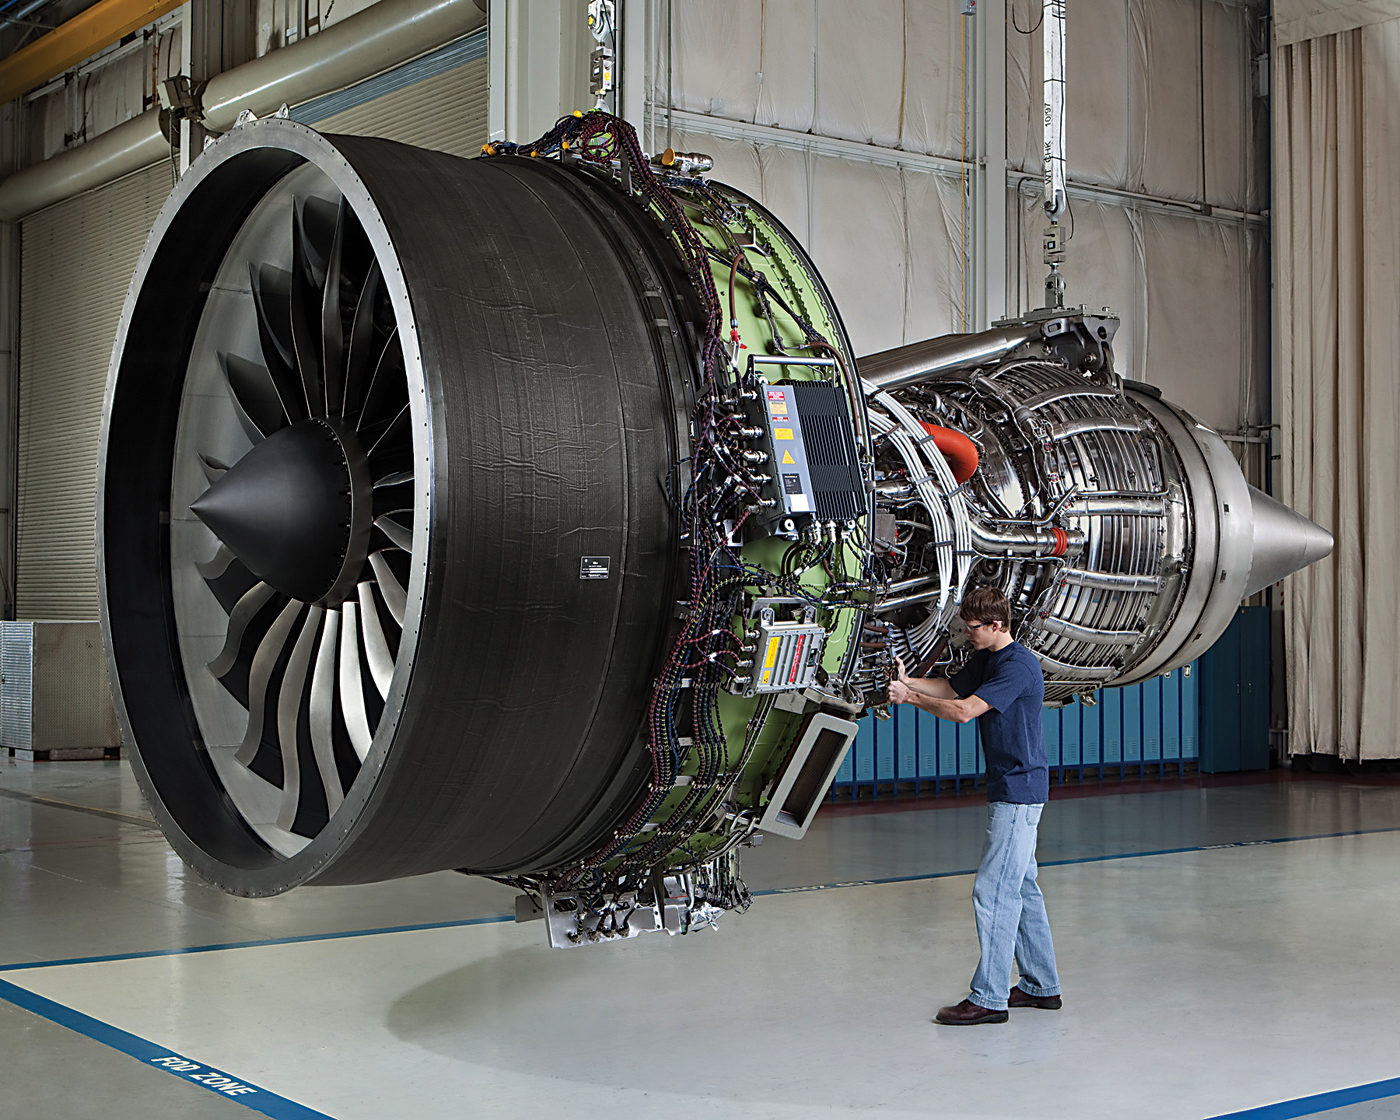 Staff in Bromont also make parts for the GEnx, a next-generation engine for, among others, Boeing's 787 Dreamliner. GE Photo